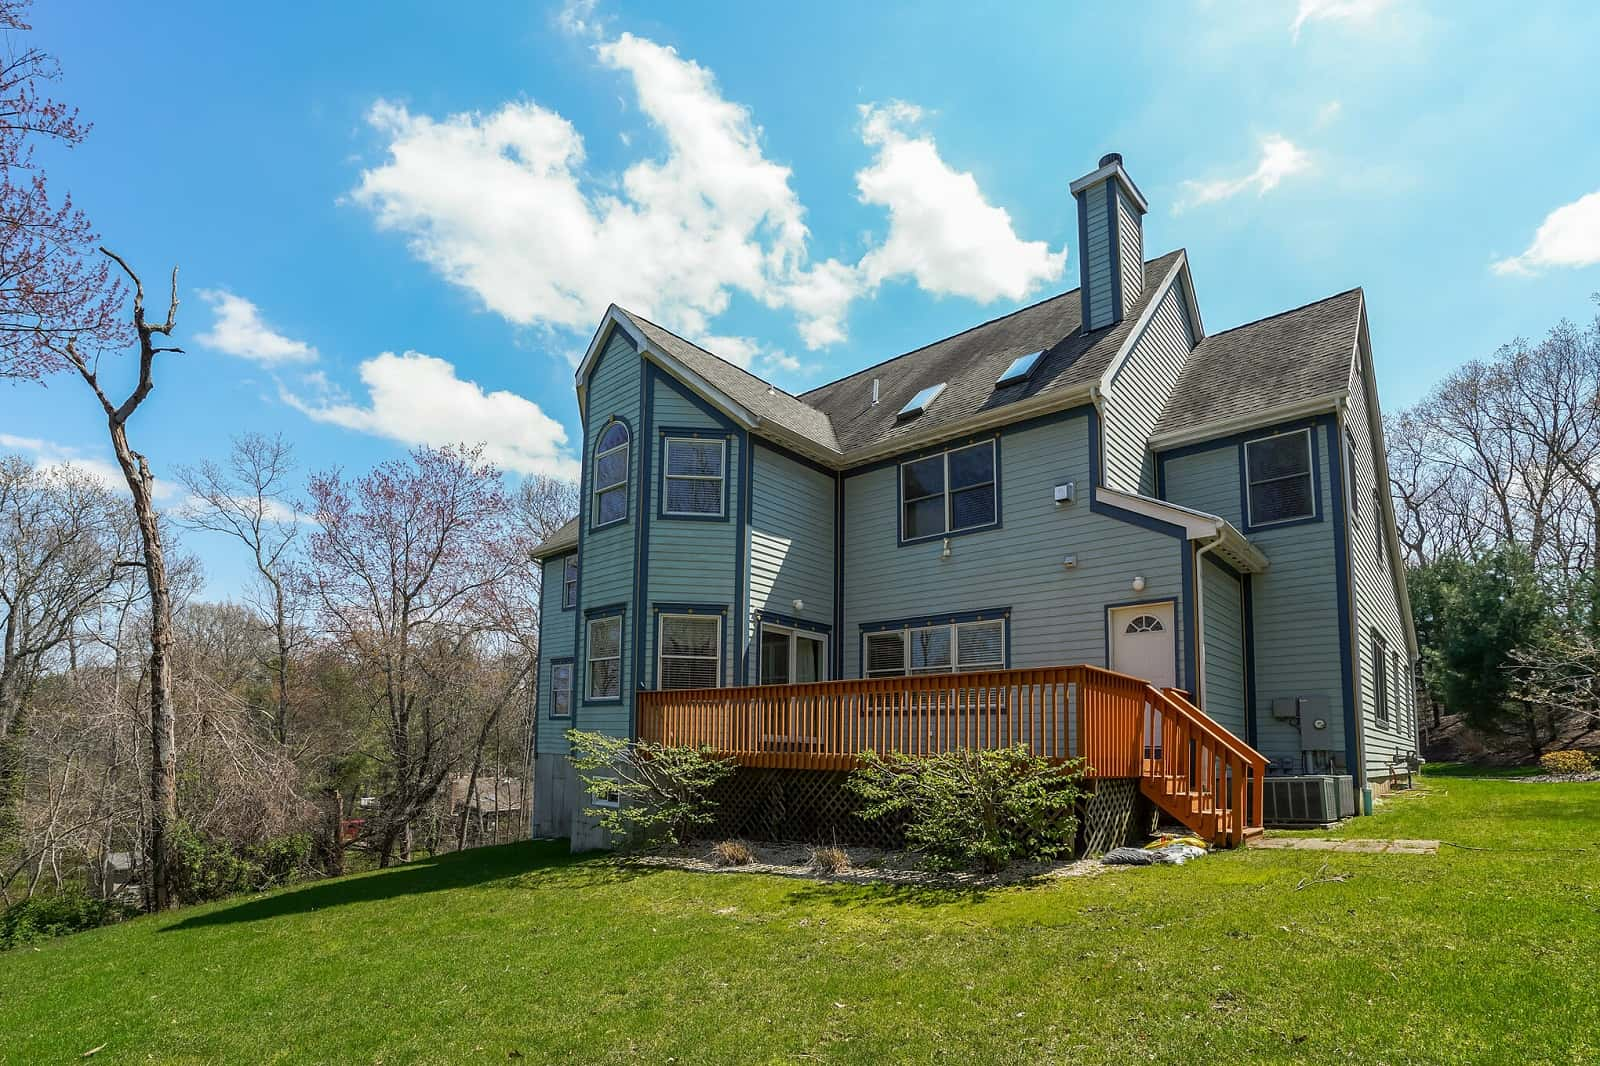 Real Estate Photography in Huntington - NY - USA - Front View